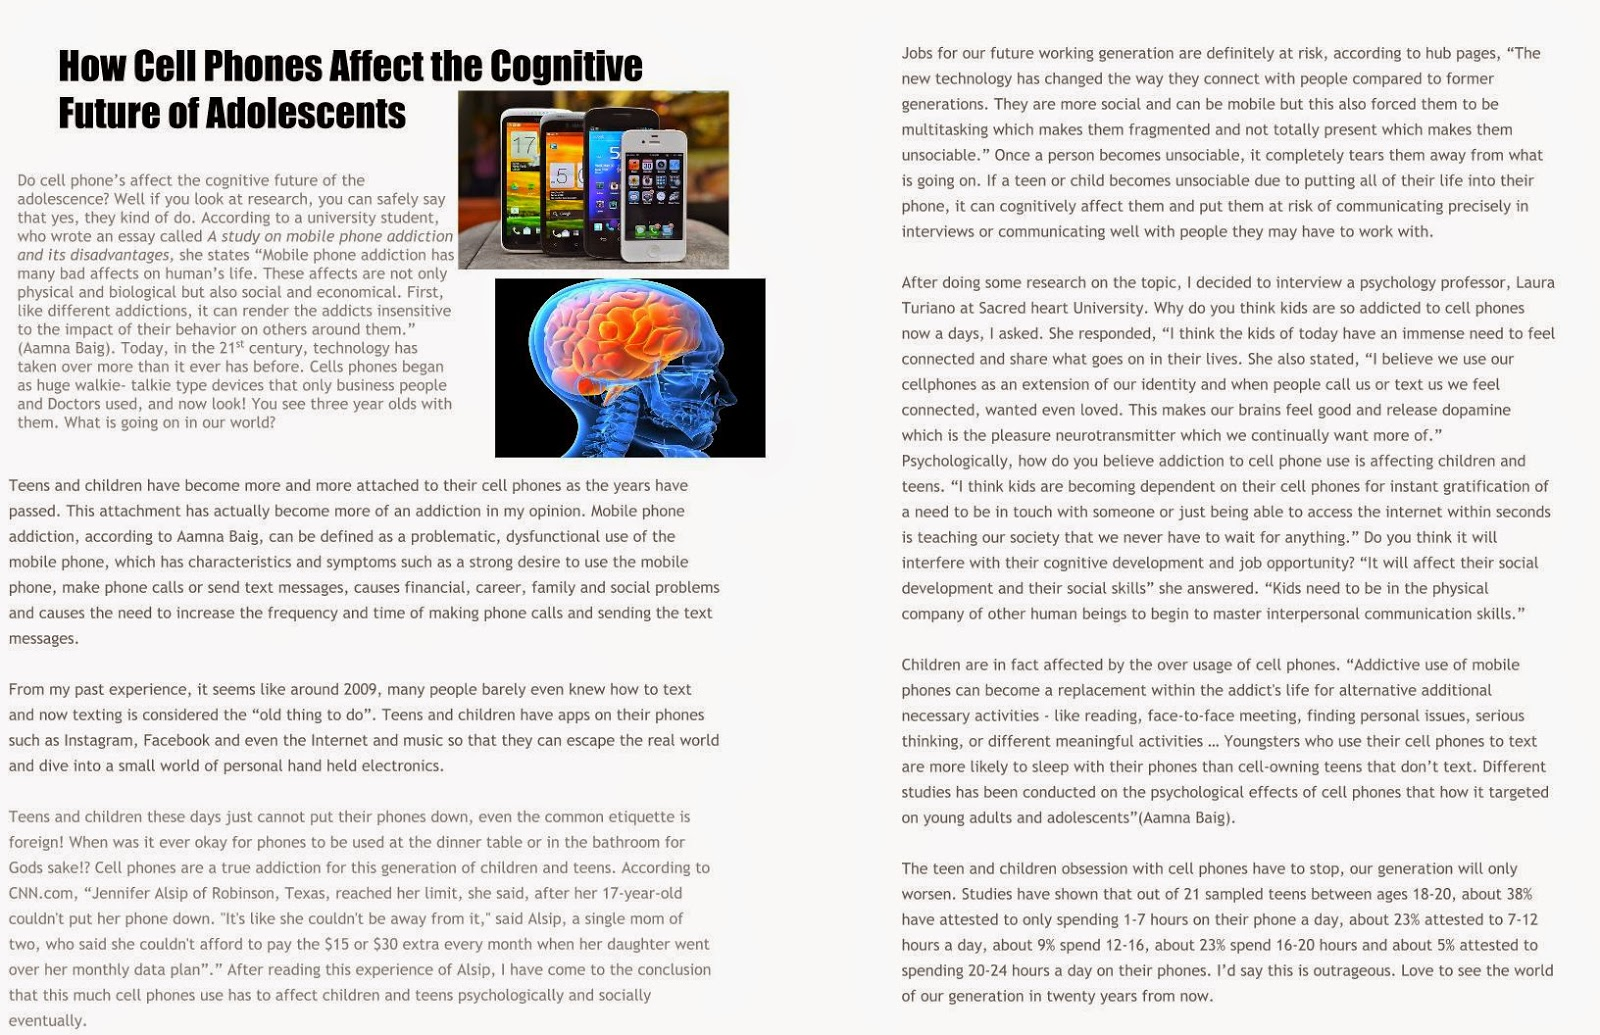 cell phone effects society essay